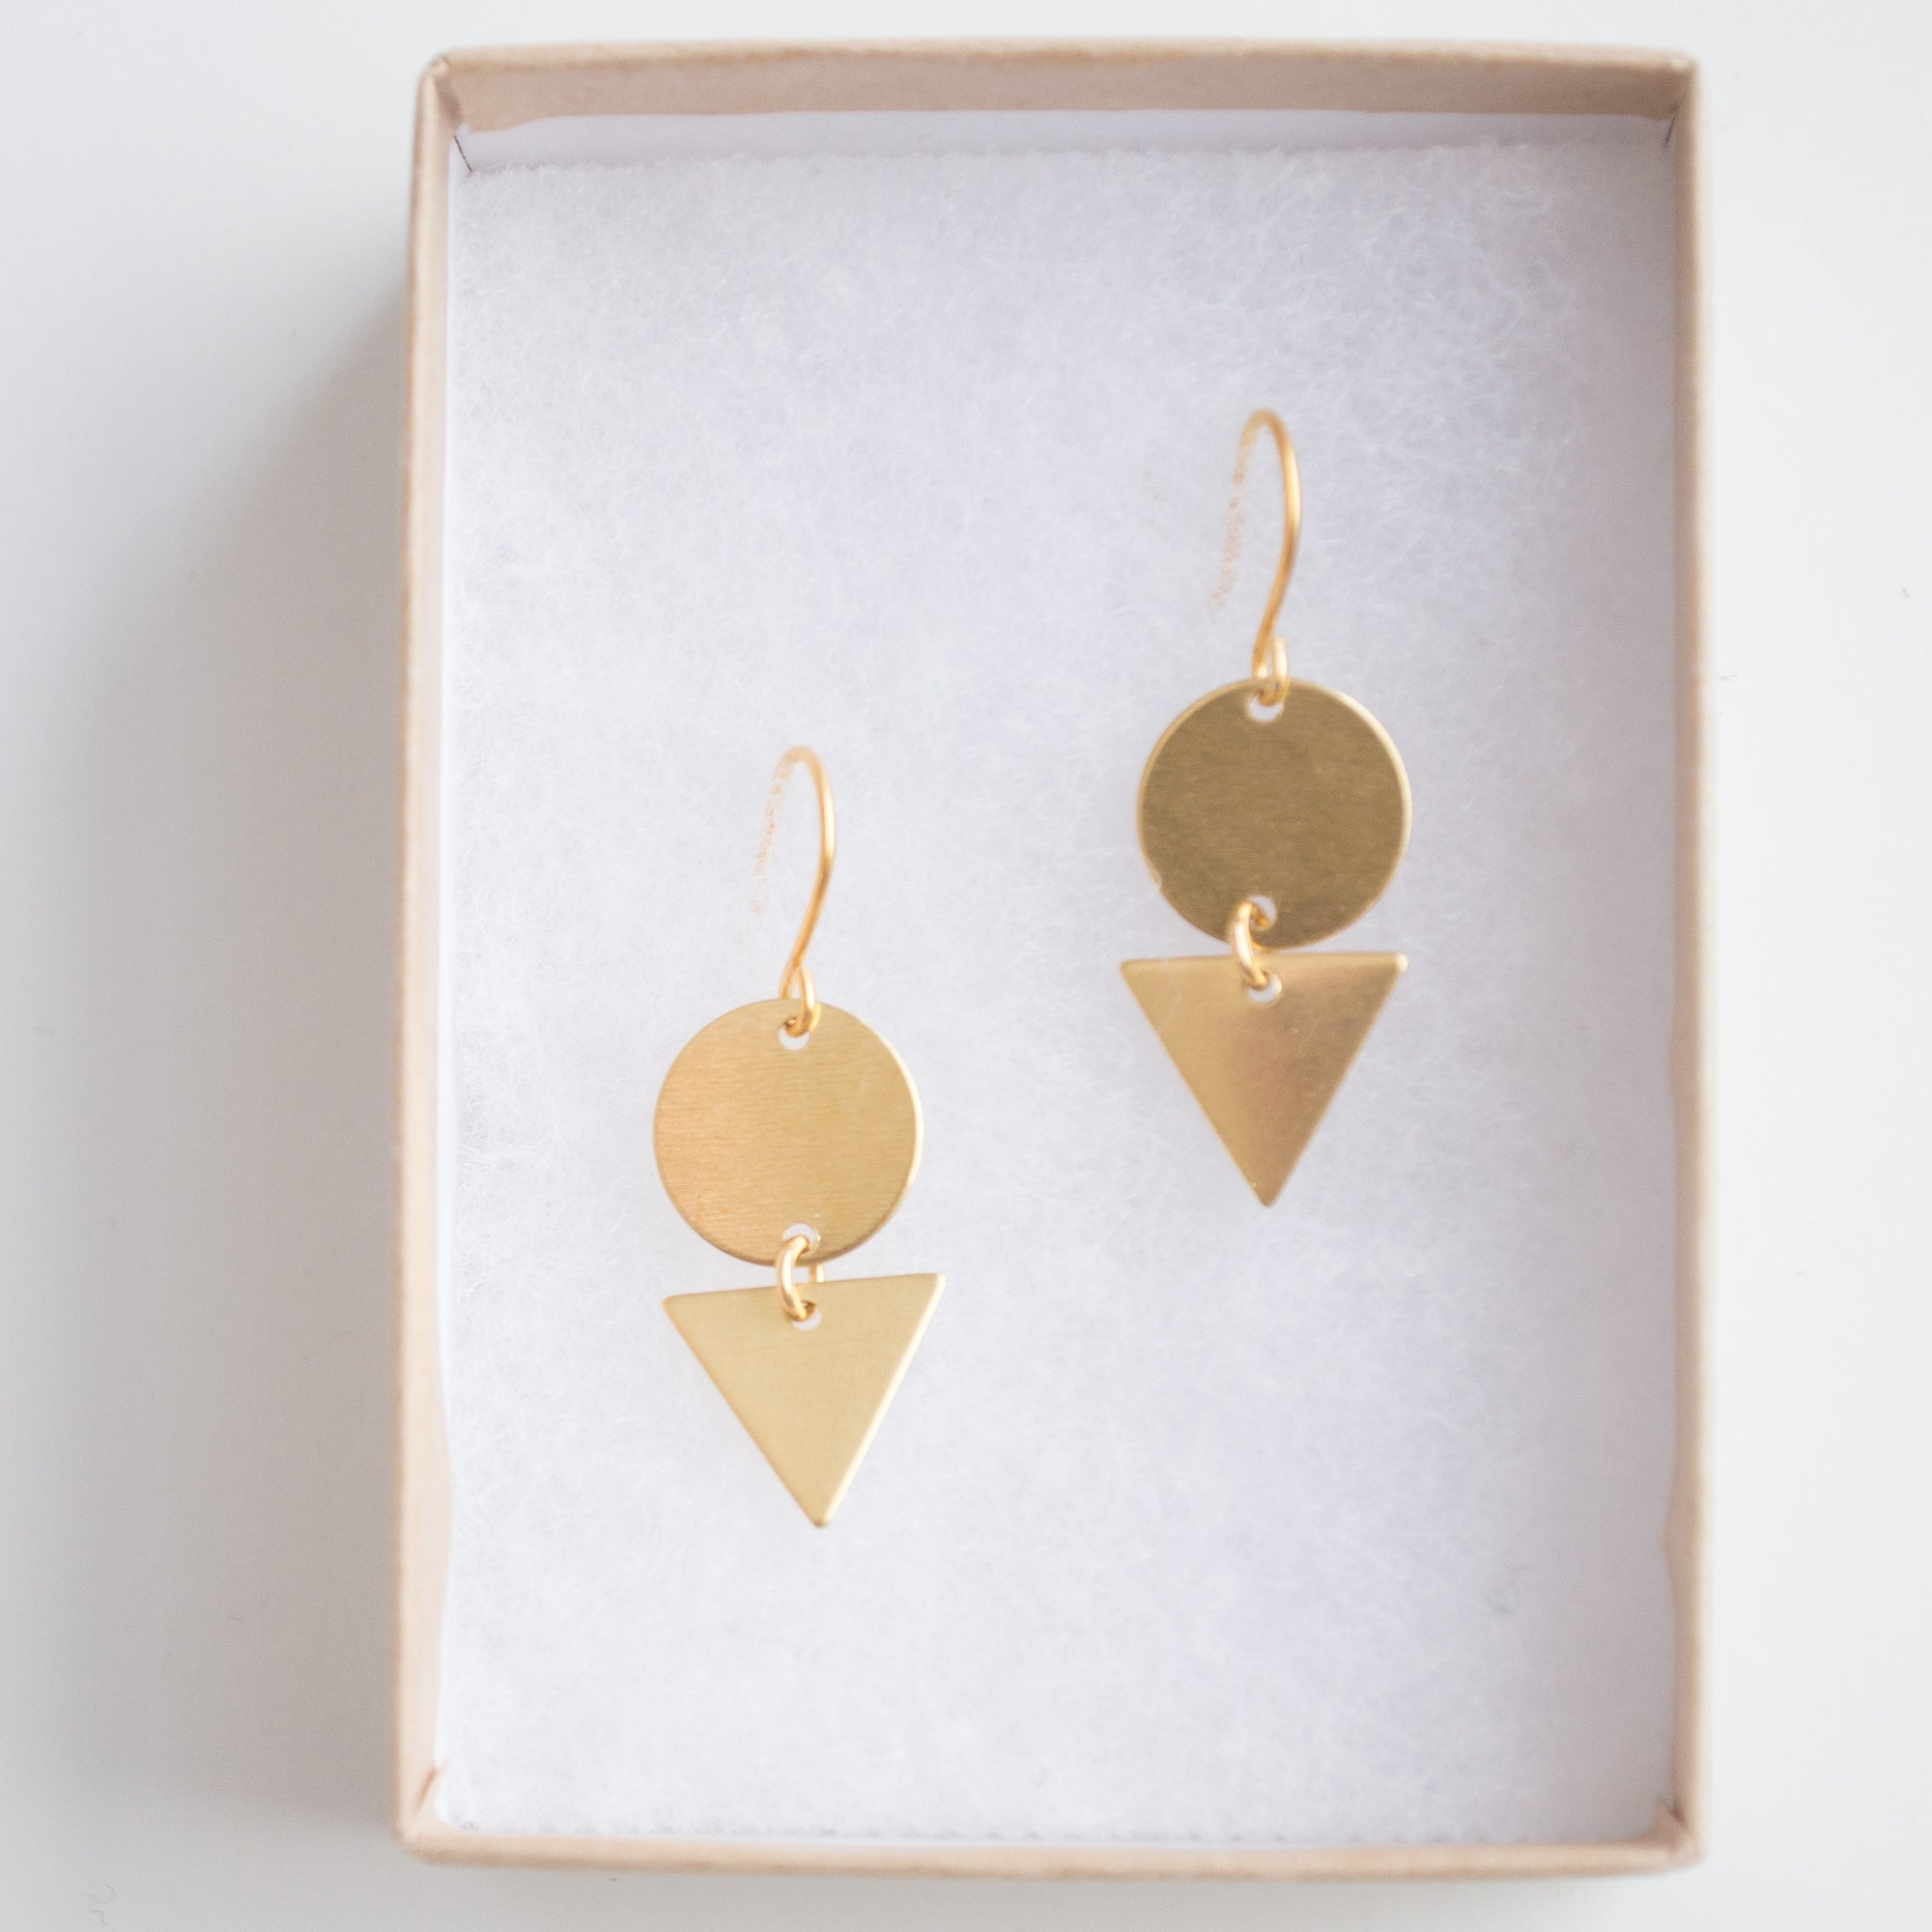 brass and geometric earrings silver index